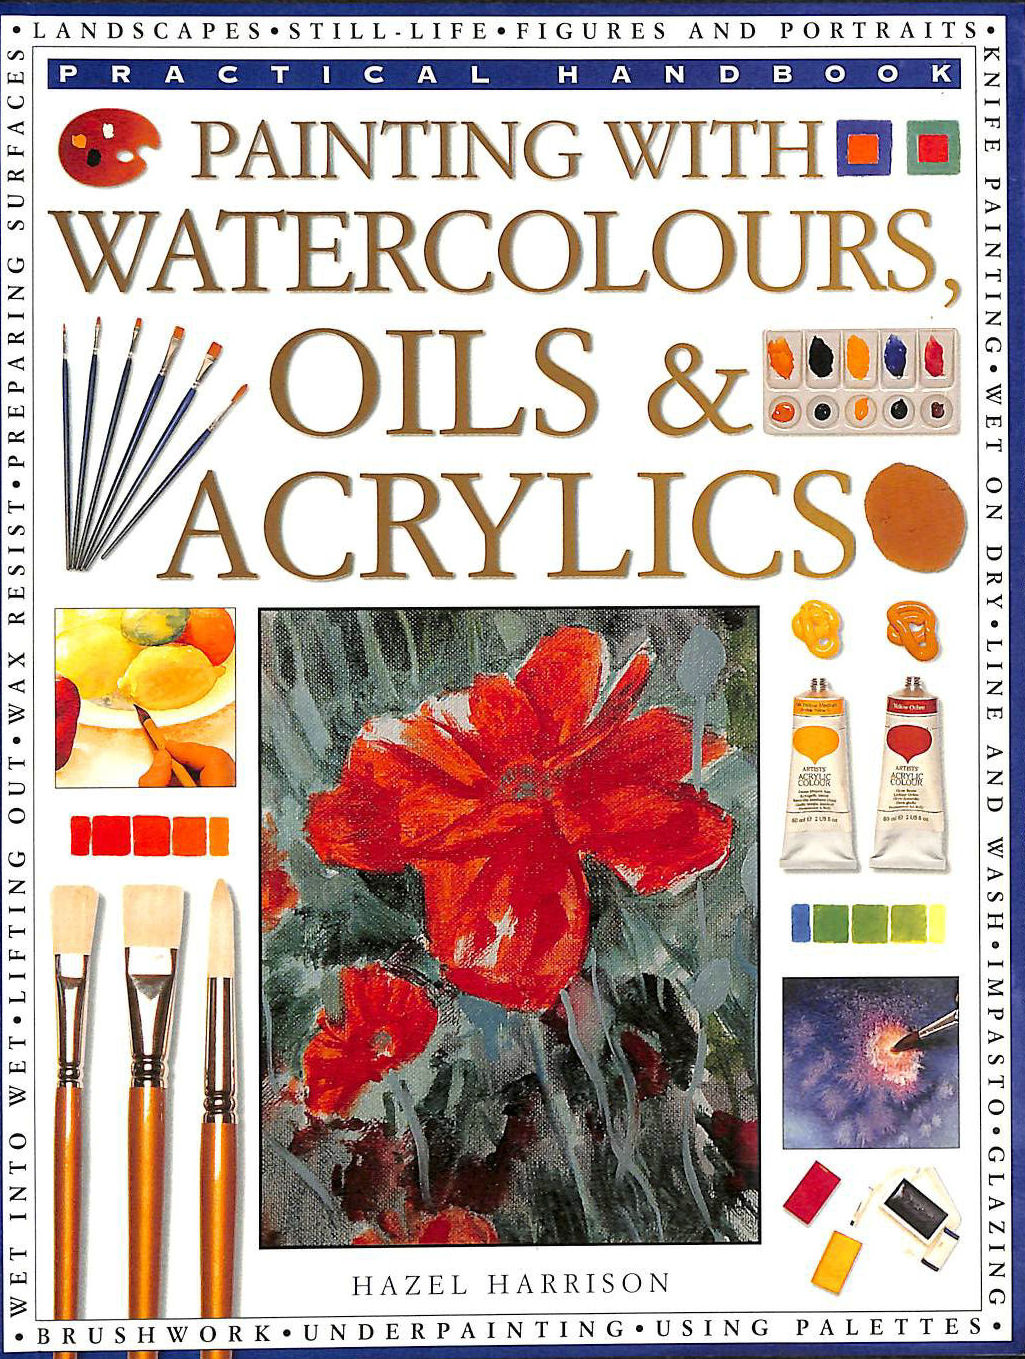 Image for How to Paint with Watercolour, Oil and Acrylic (Practical Handbook)